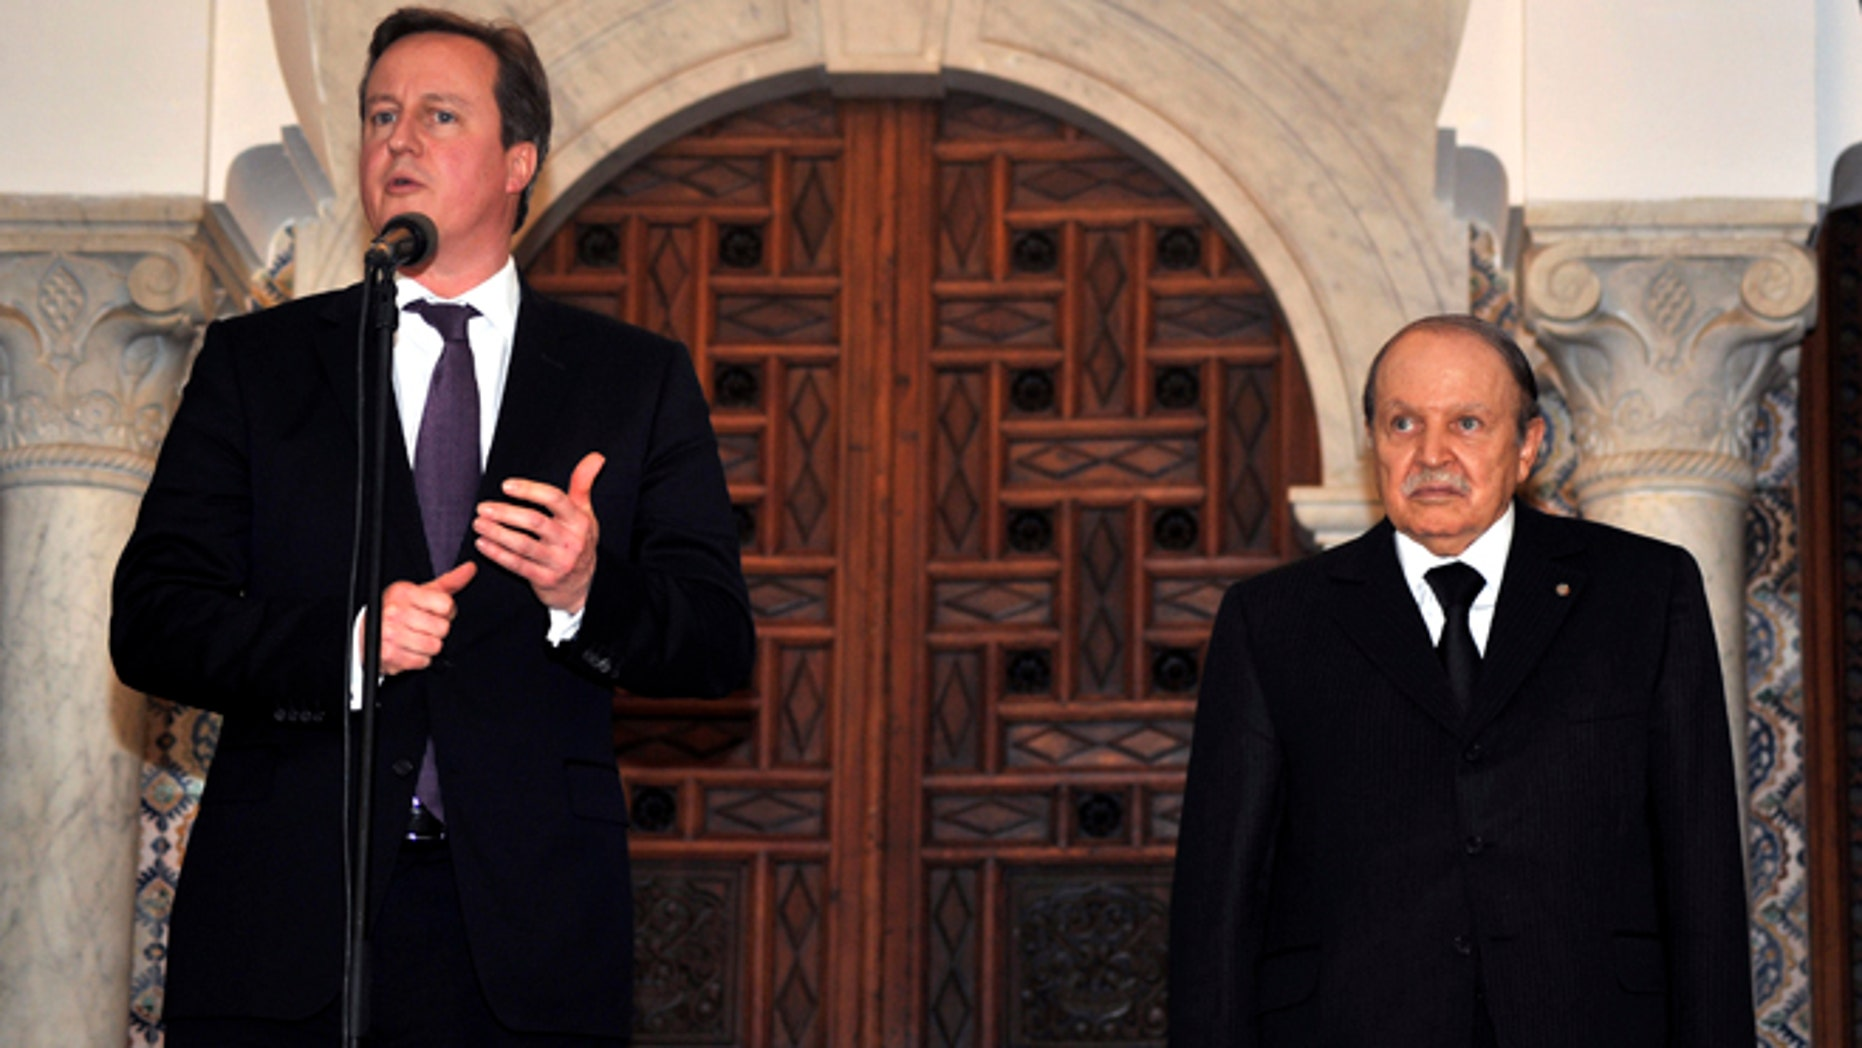 Jan. 30, 2013: Algerian President Abdelaziz Bouteflika, right, listens to Britain's Prime Minister David Cameron as he delivers a speech in Algiers, Wednesday. Britain and Algeria agreed to a security partnership that could see greater intelligence-sharing and planning for future crises, Cameron said Wednesday on a visit to the North African country.